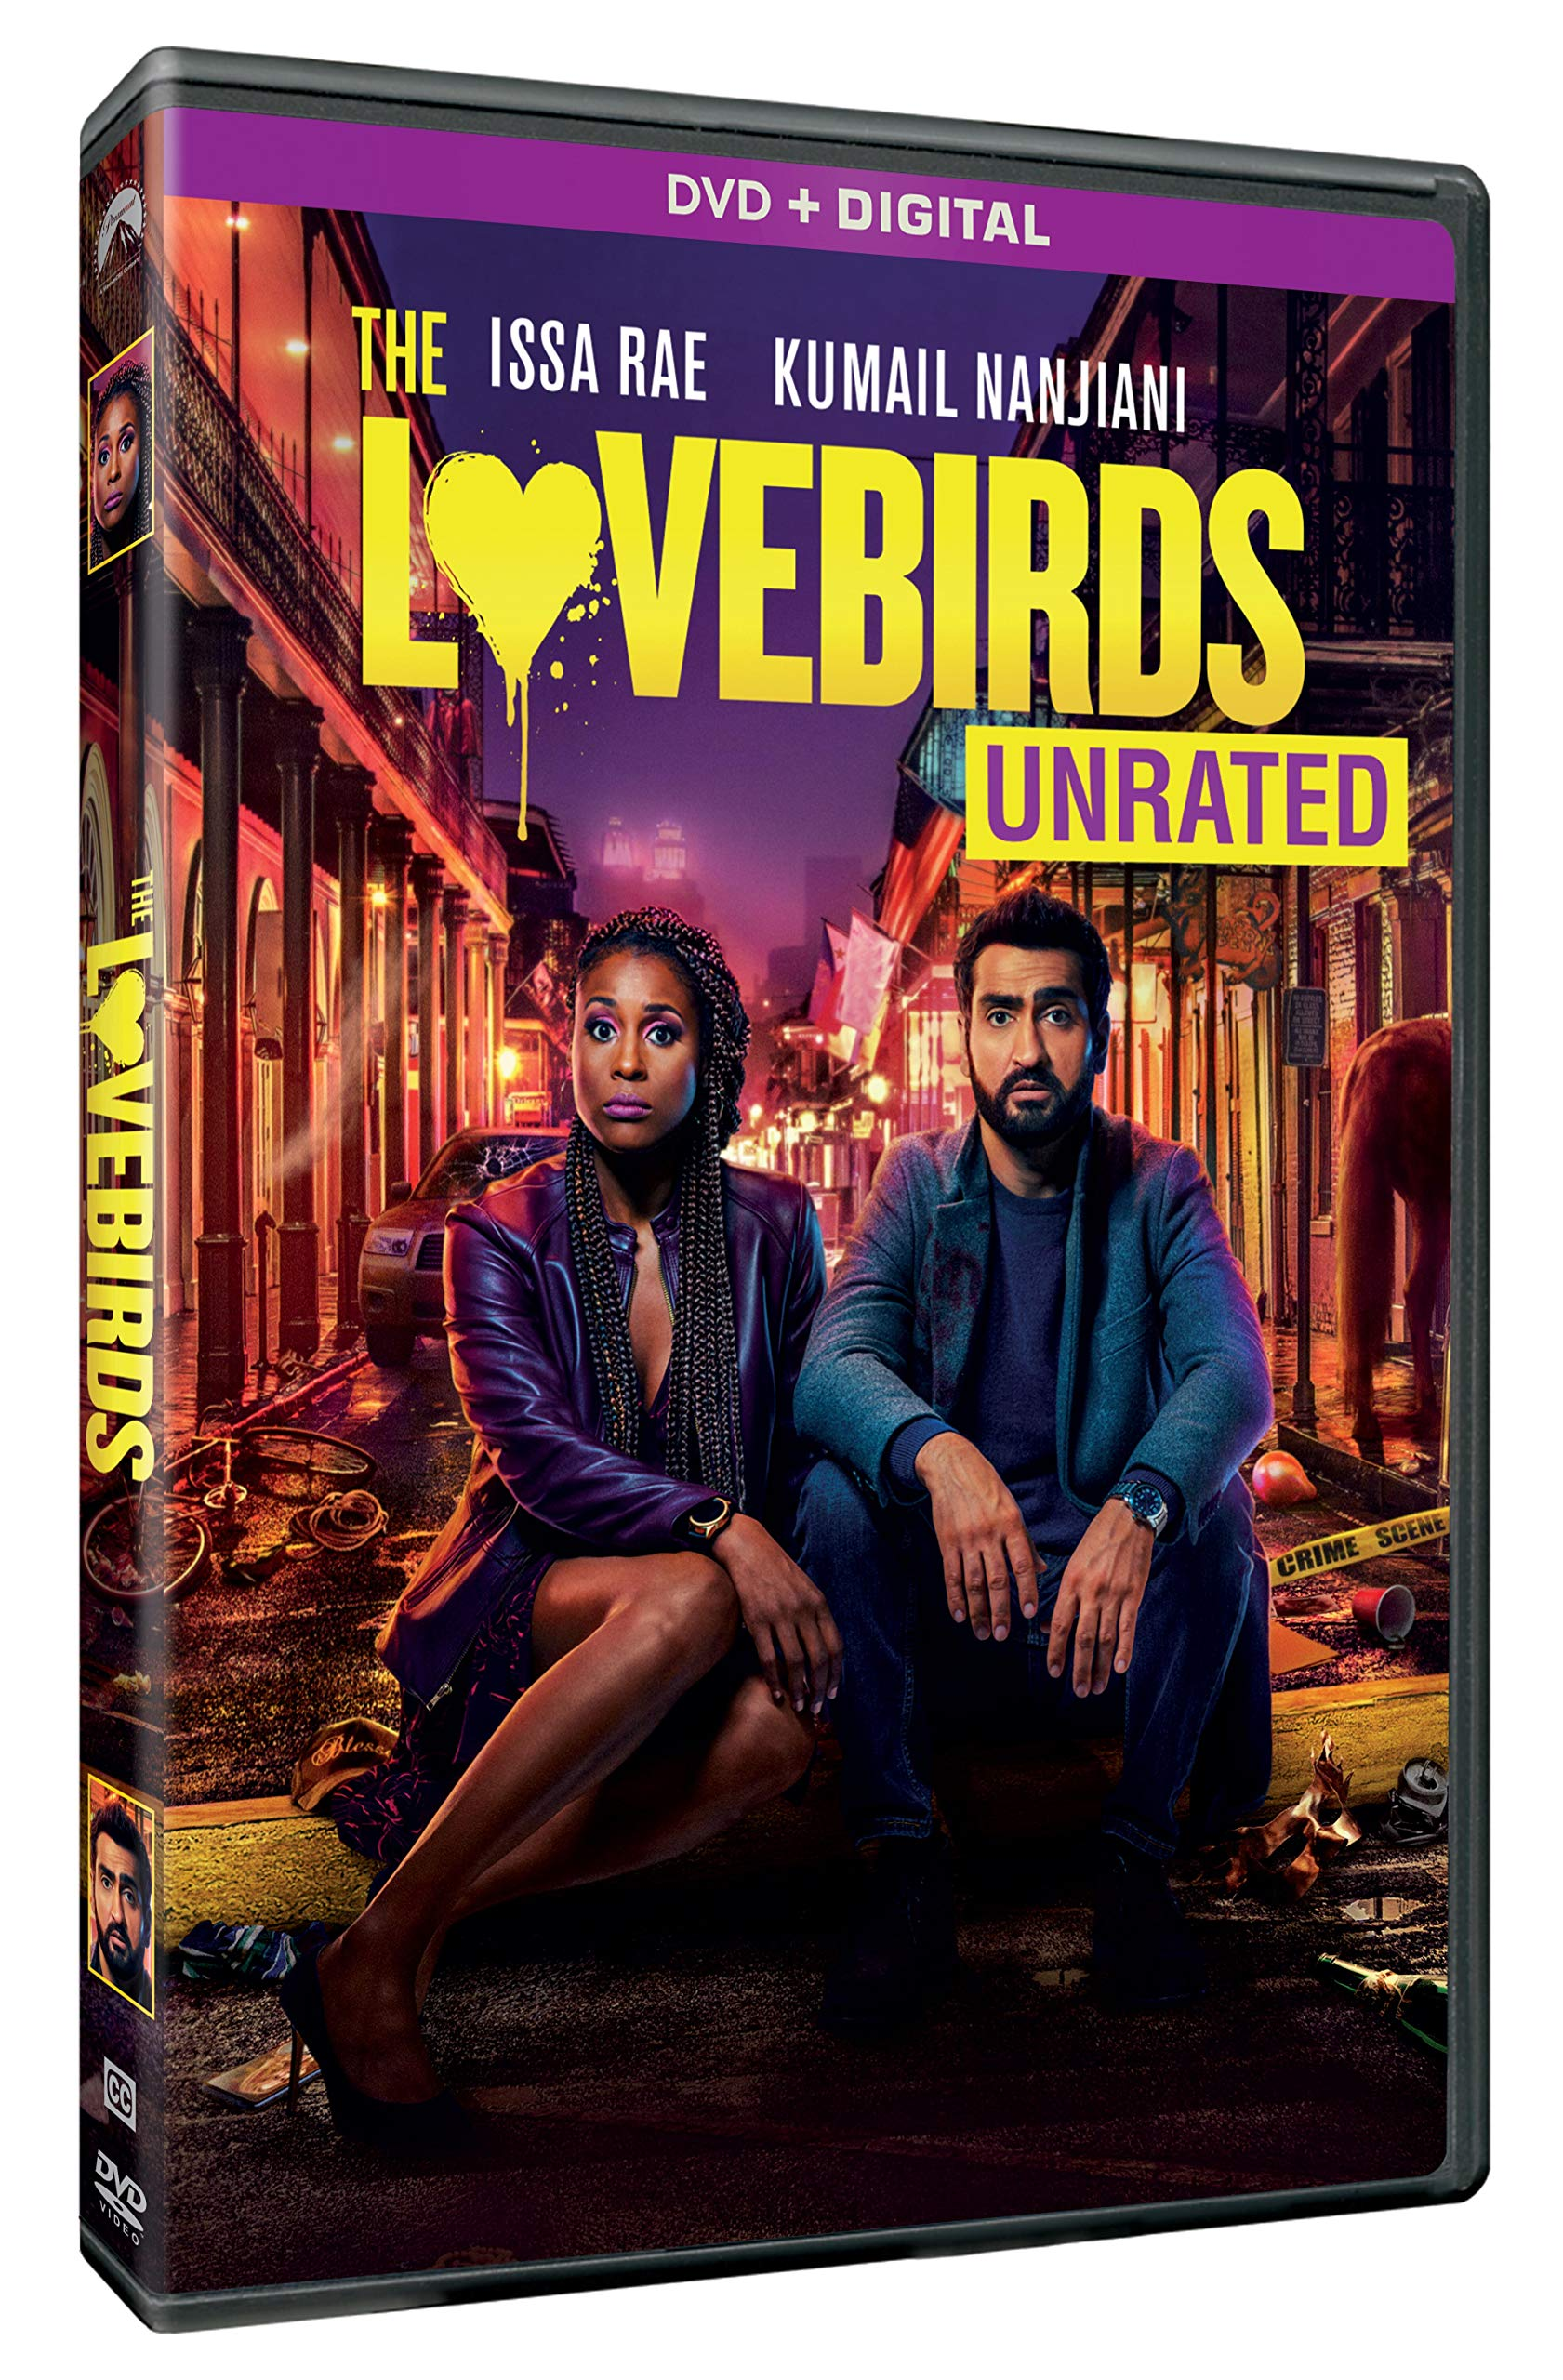 Book Cover: The Lovebirds